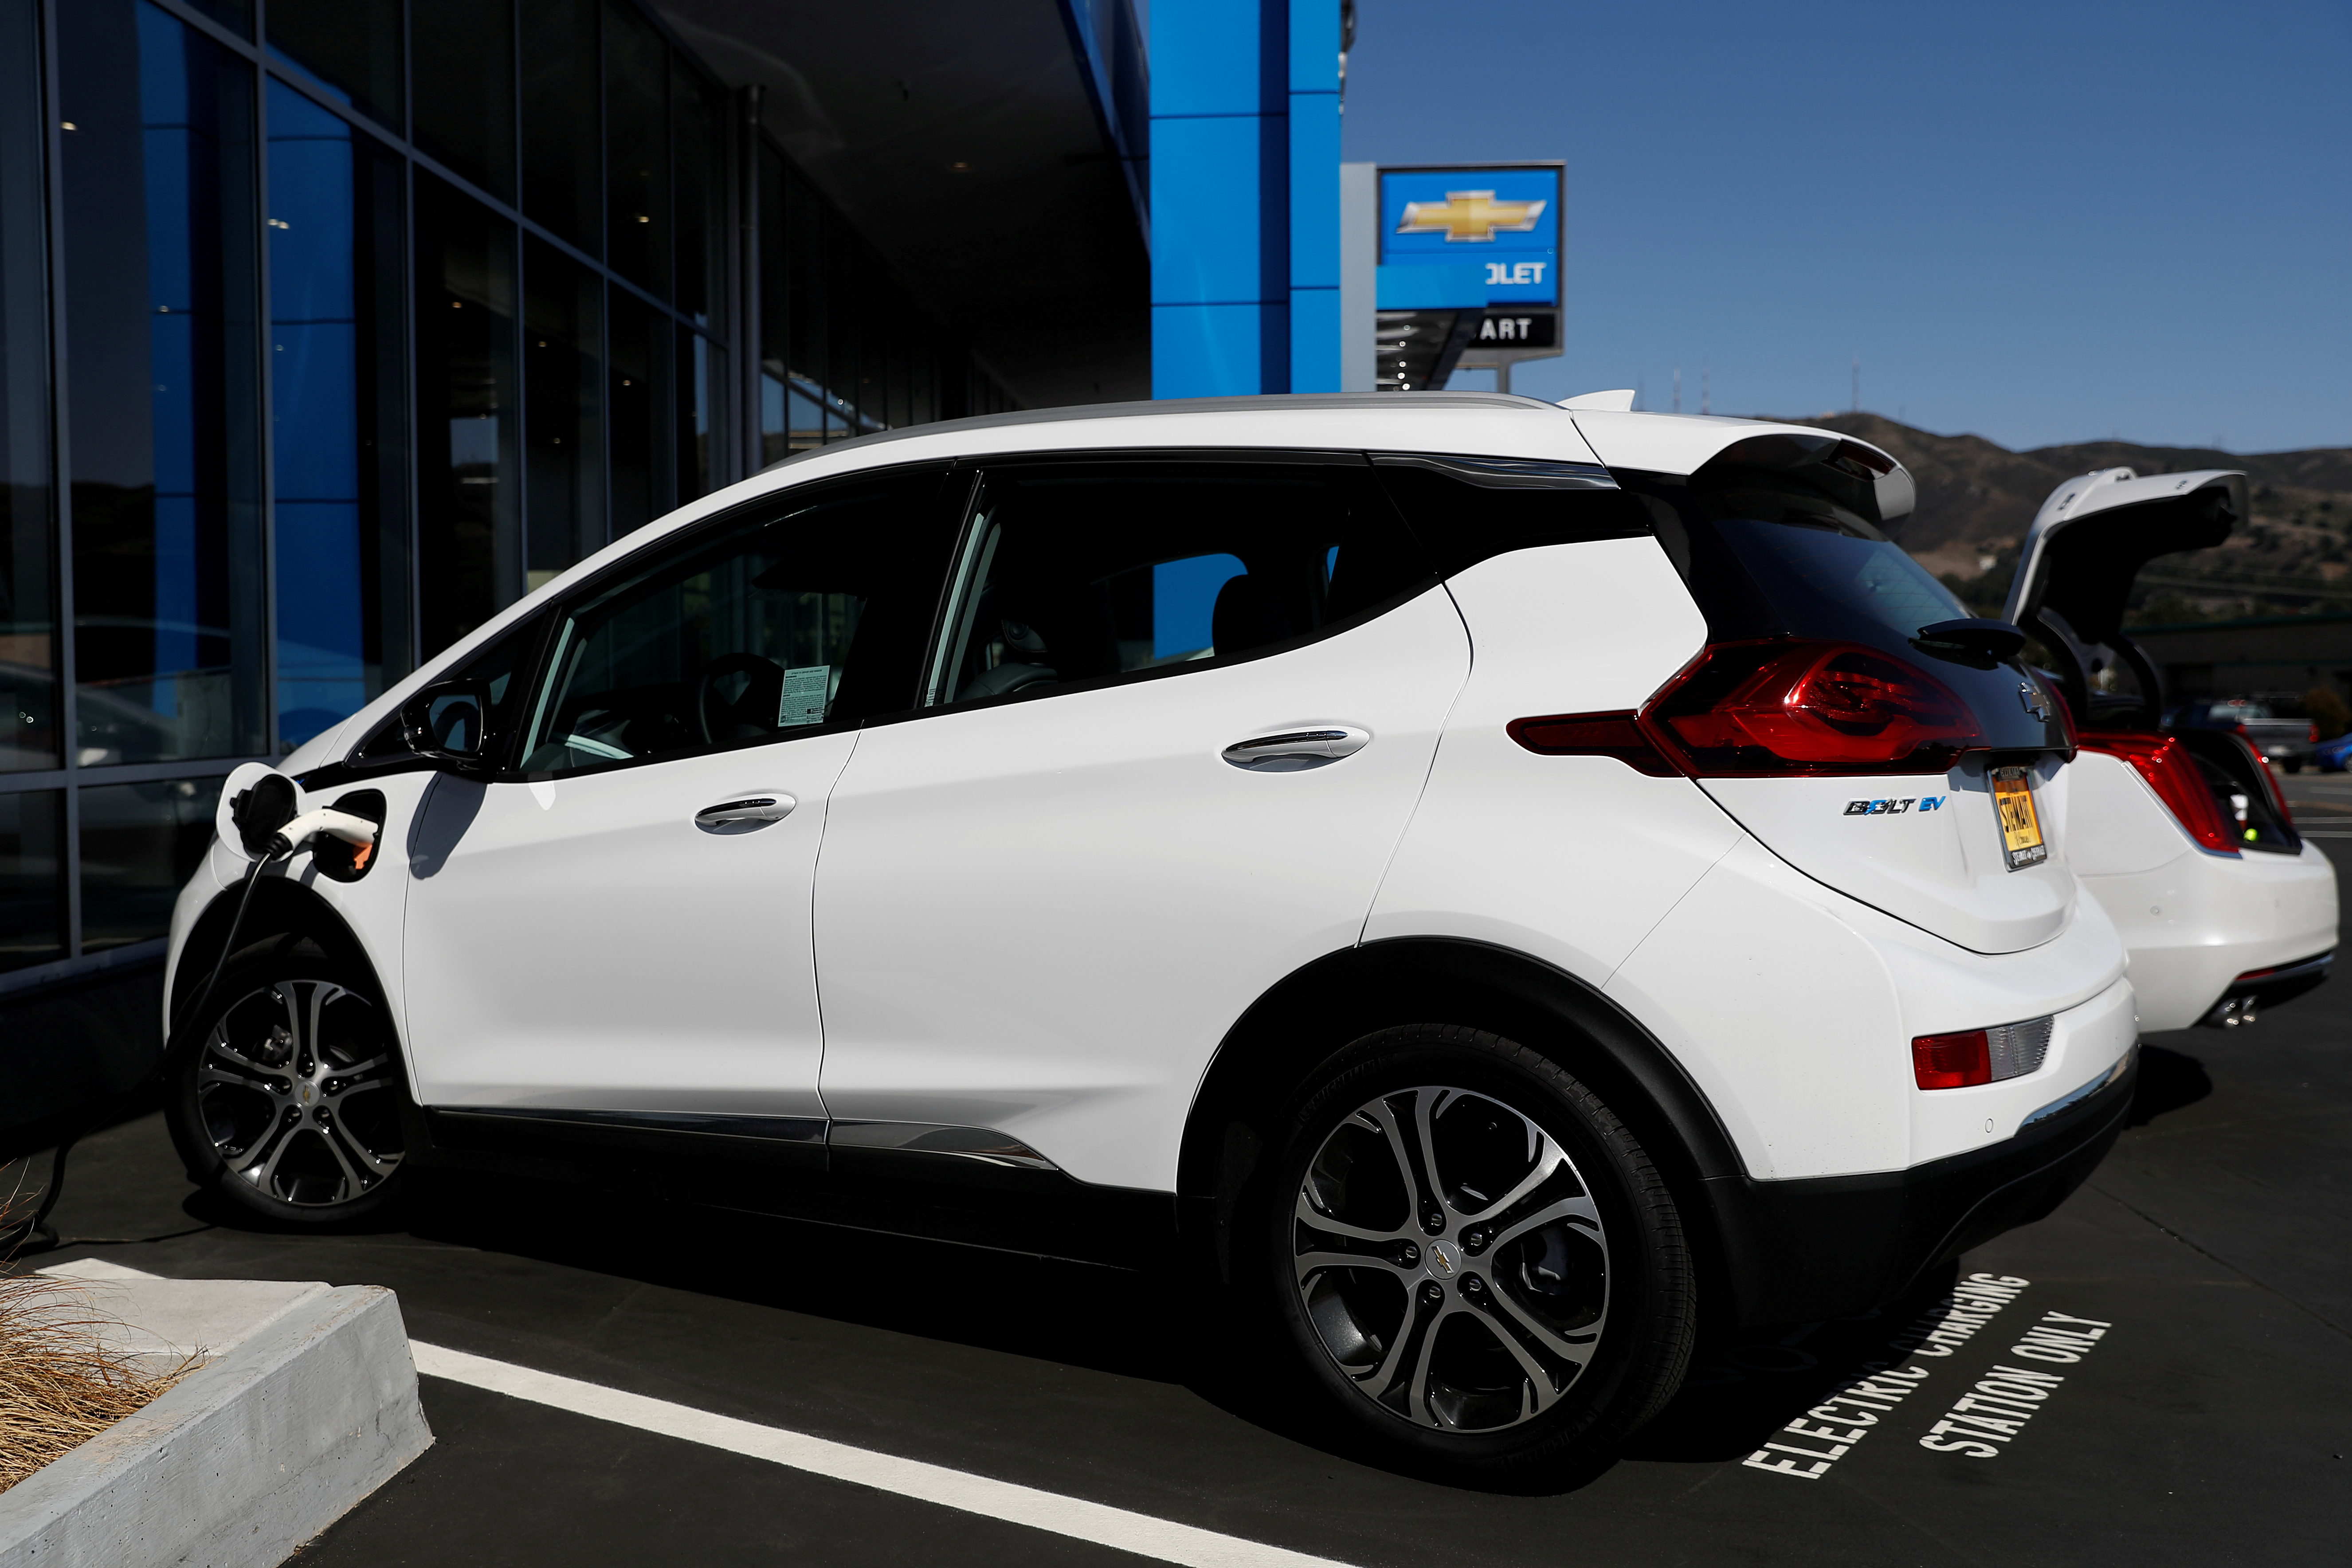 A Chevrolet Bolt electric vehicle is seen at Stewart Chevrolet in Colma, California, U.S., October 3, 2017. REUTERS/Stephen Lam/File Photo